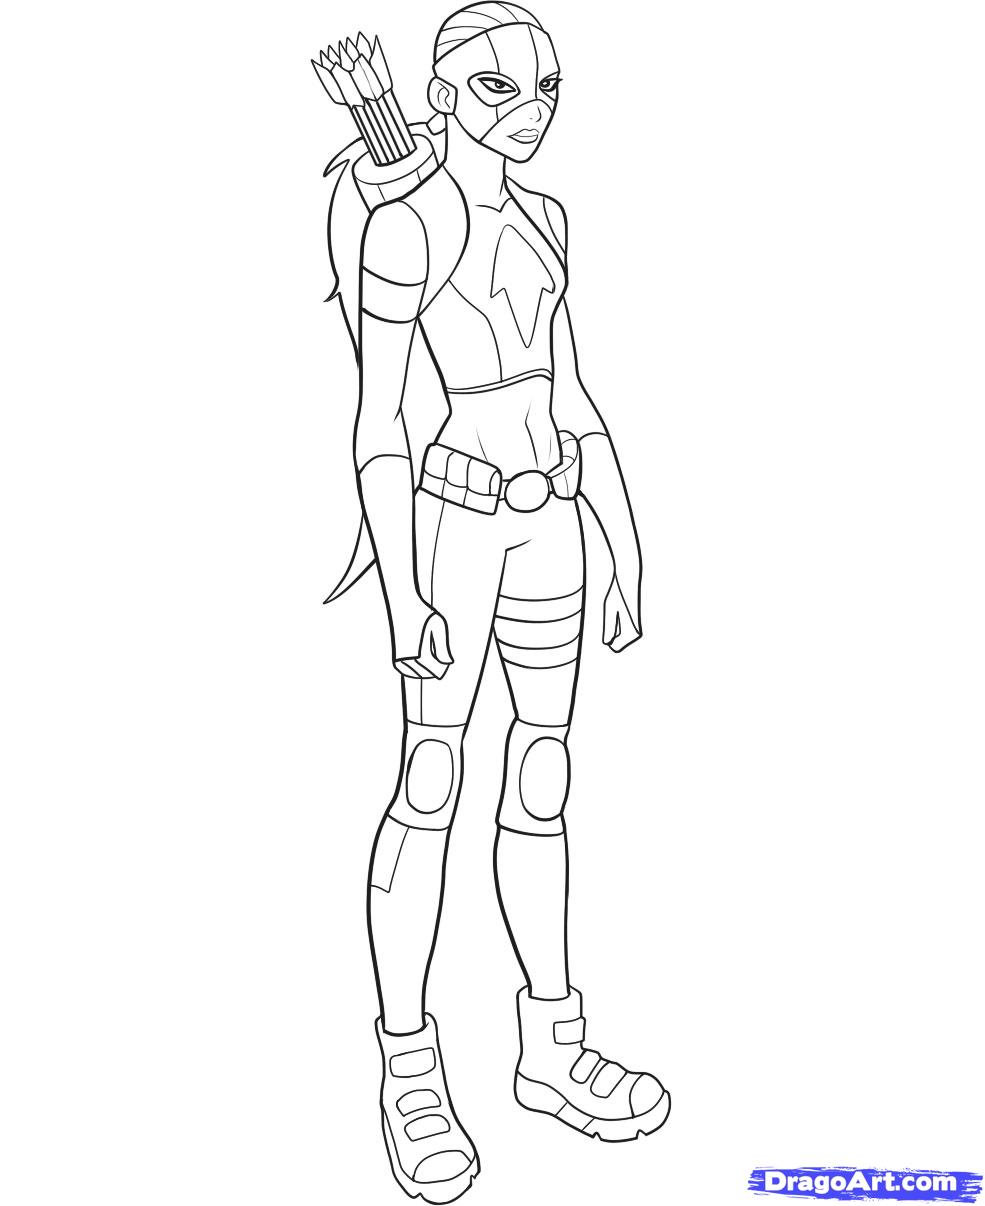 985x1206 Young justice drawings How To Draw Artemis Step 11 Draw